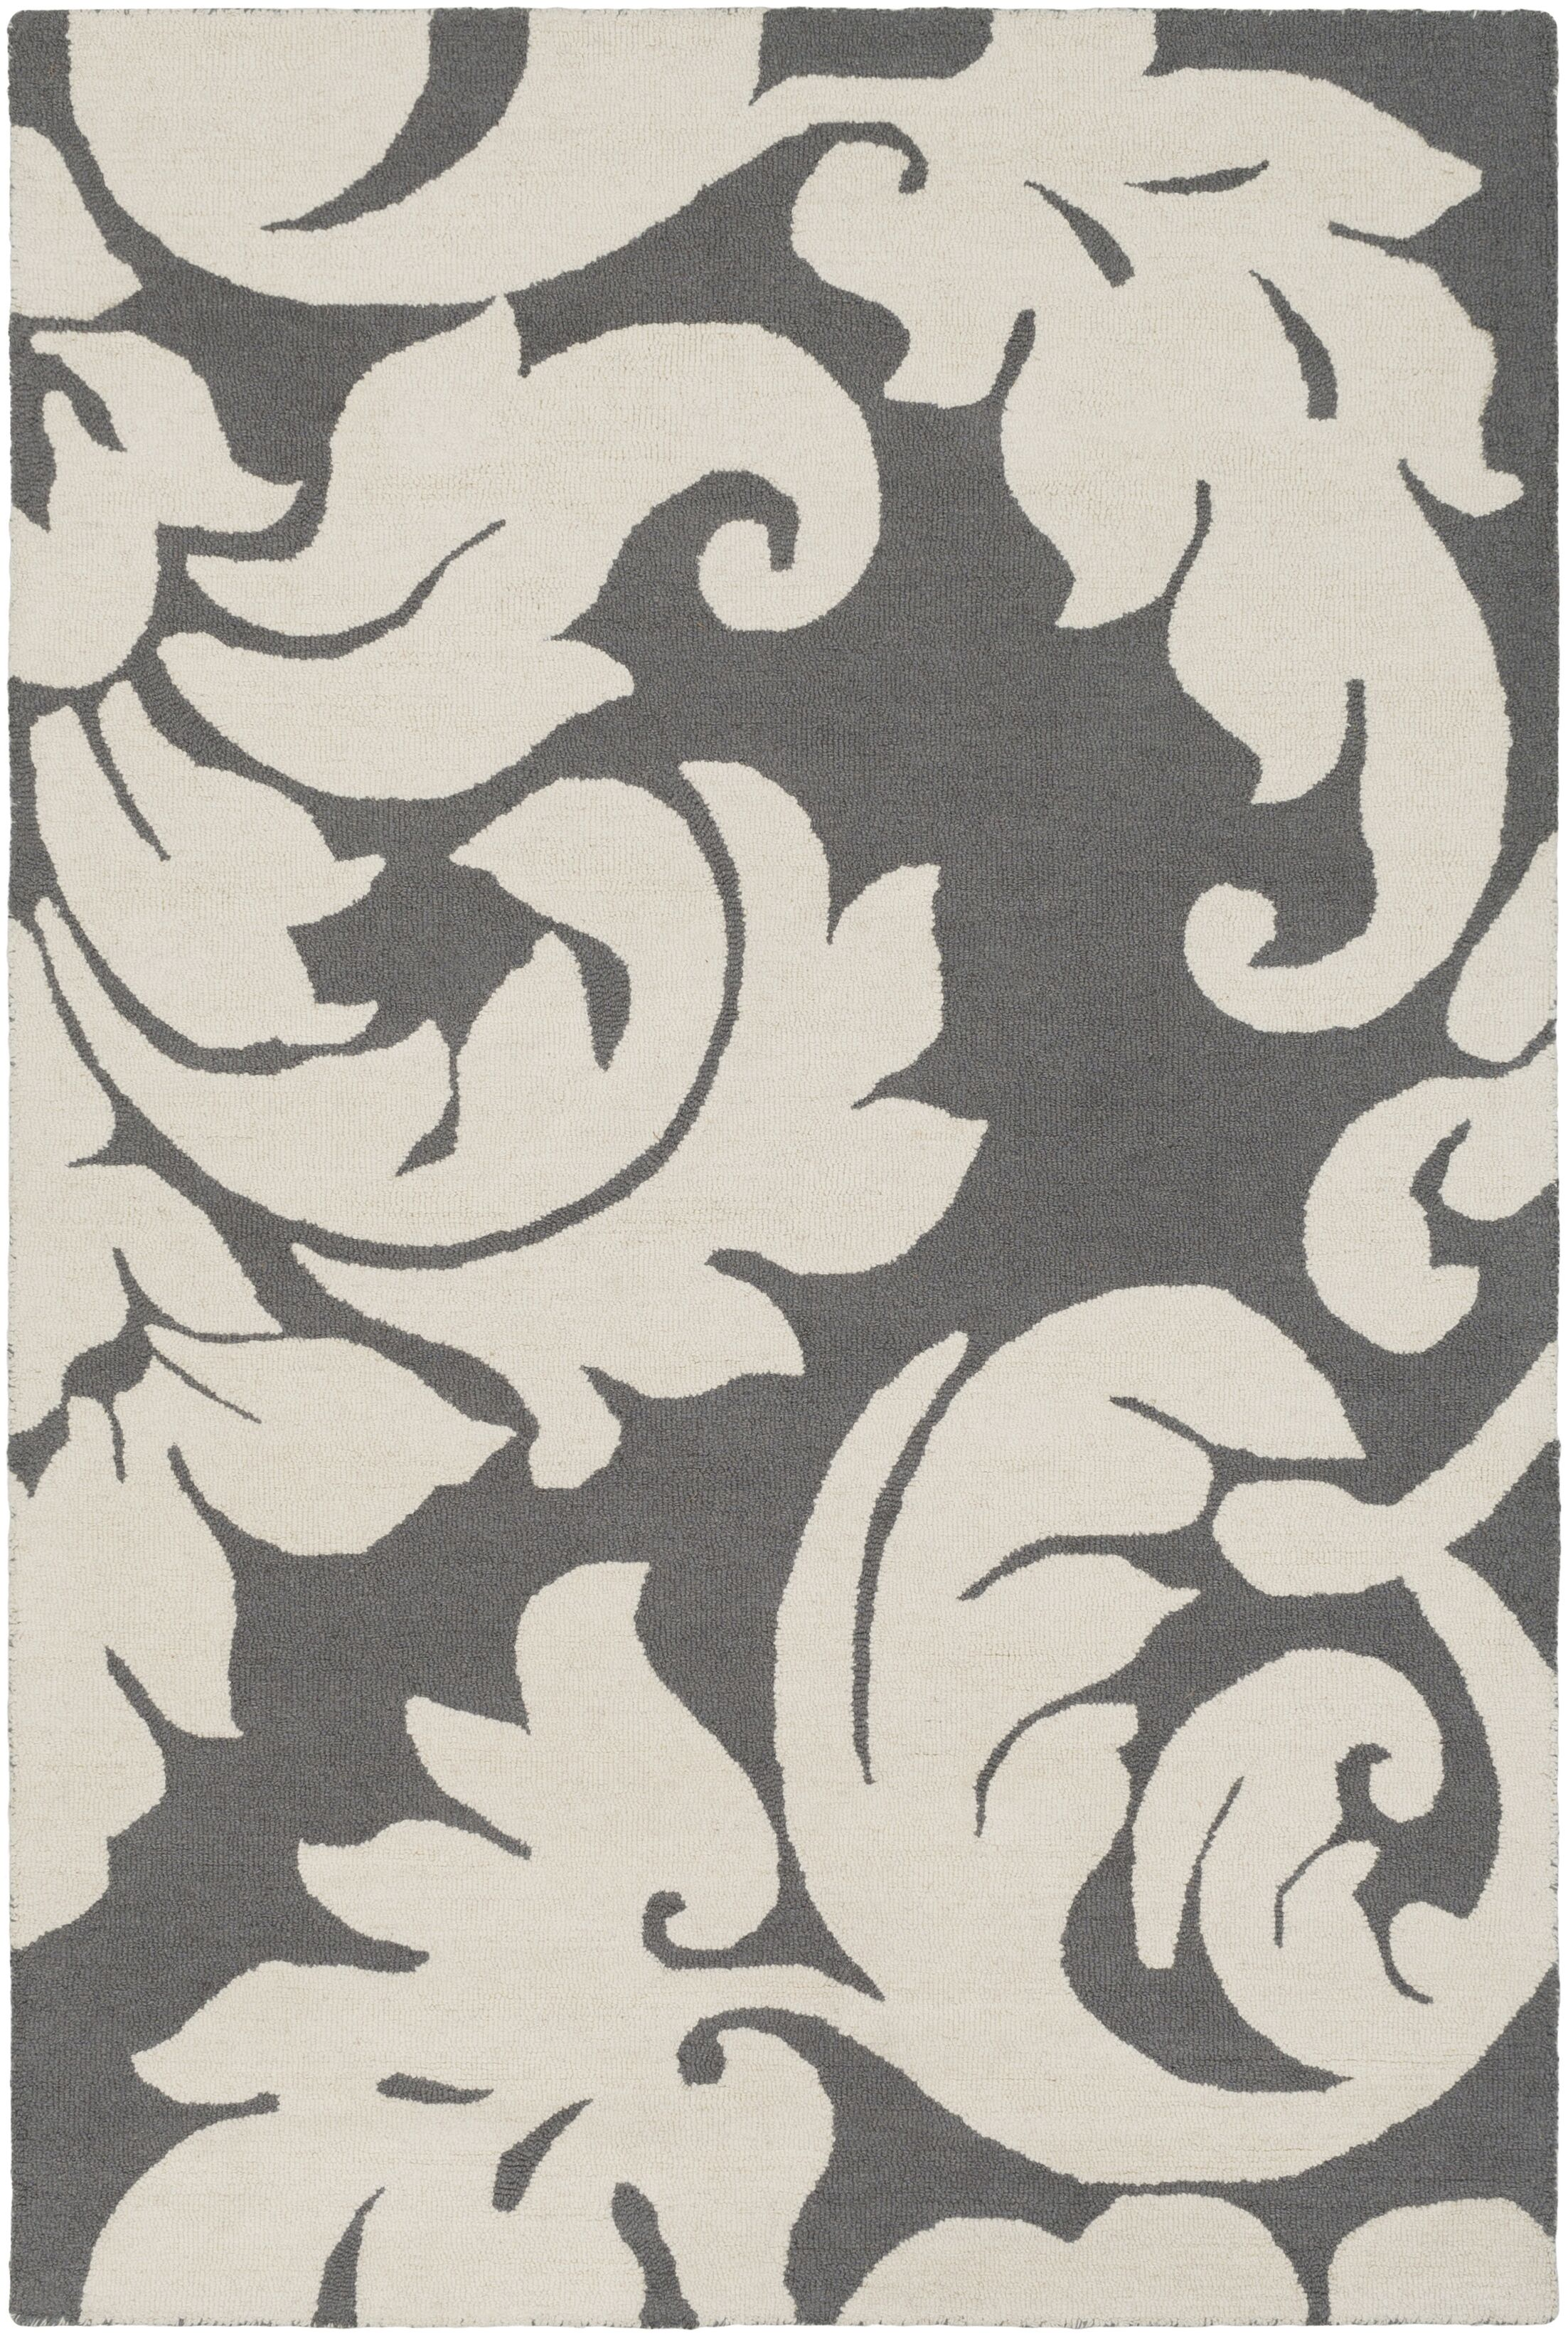 Lachance Hand-Tufted Blue Area Rug Rug Size: Rectangle 9' x 13'